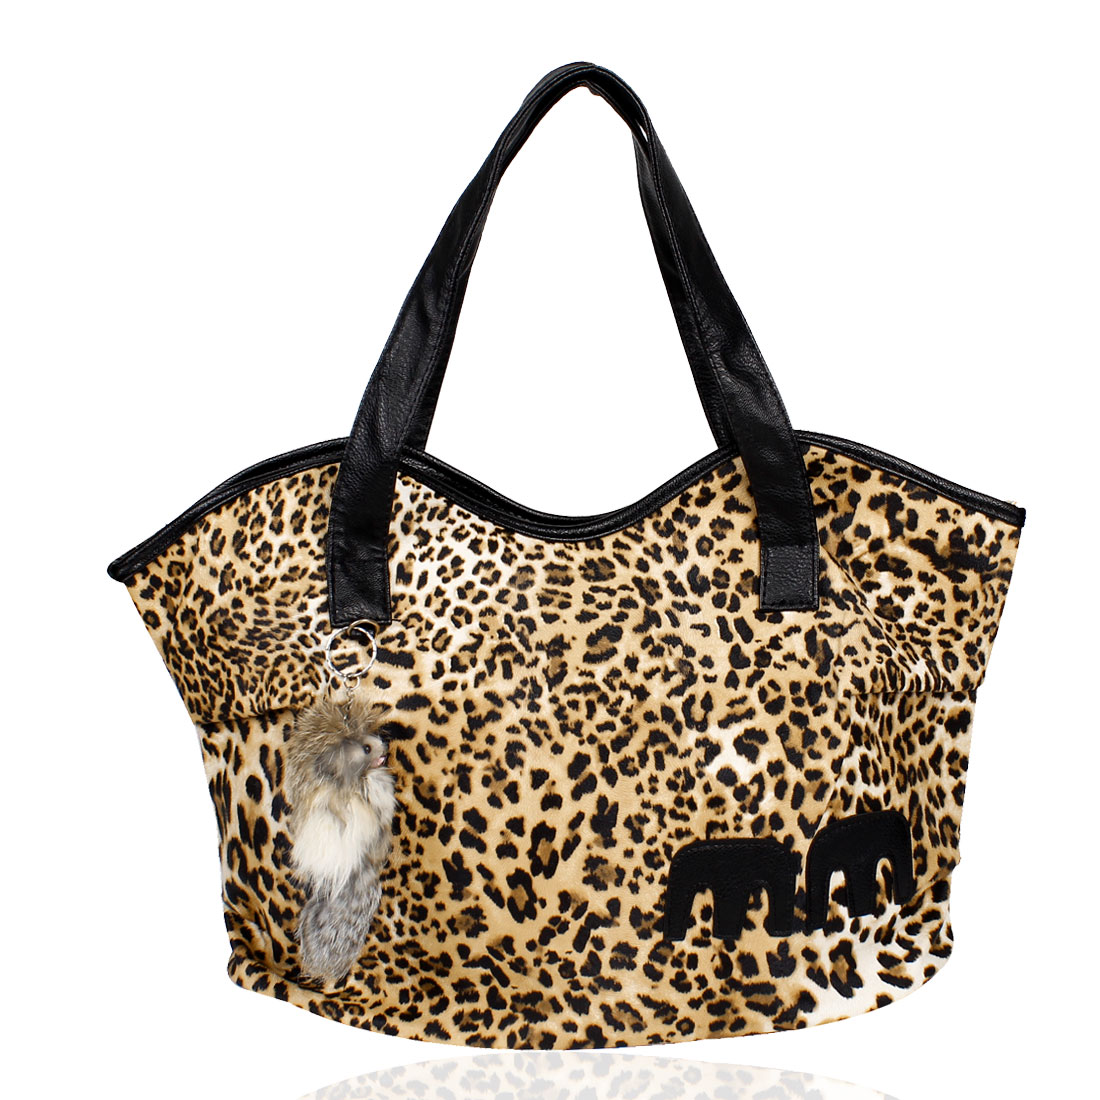 Leopard Pattern Fox Decor Zipper Closure Handbag Tote Bag Black Brown for Lady